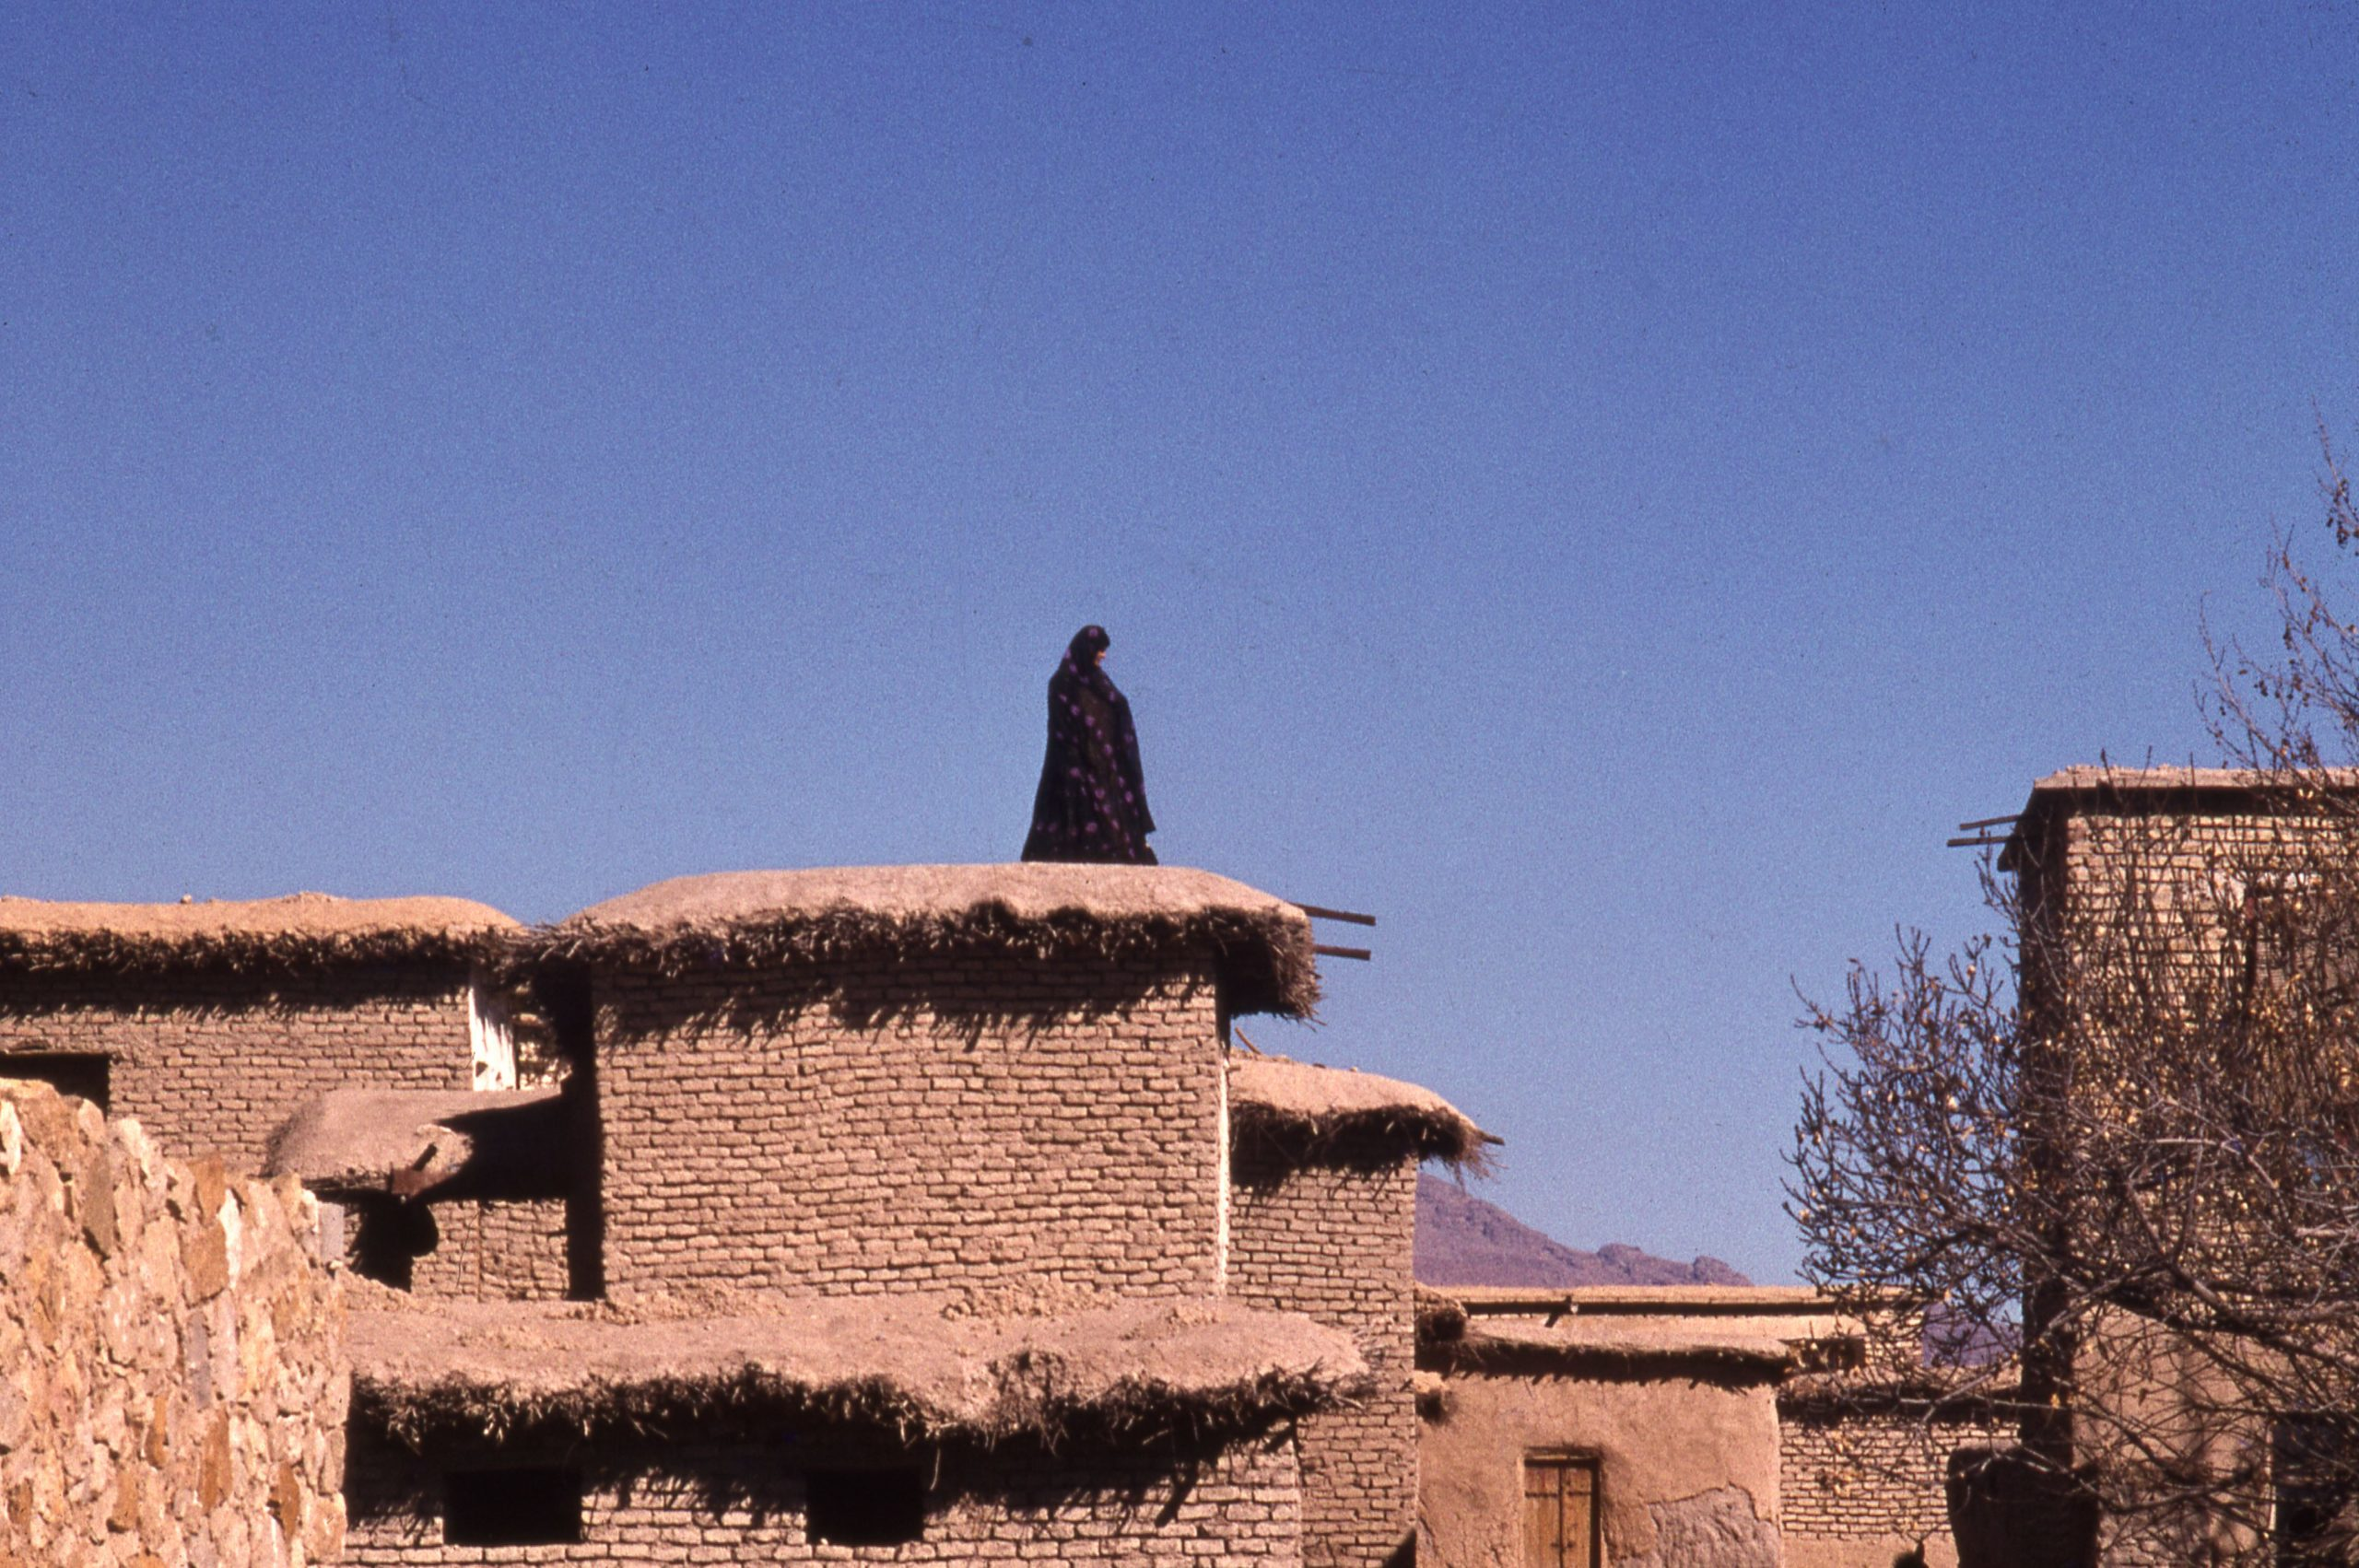 Woman on a Roof (1974)